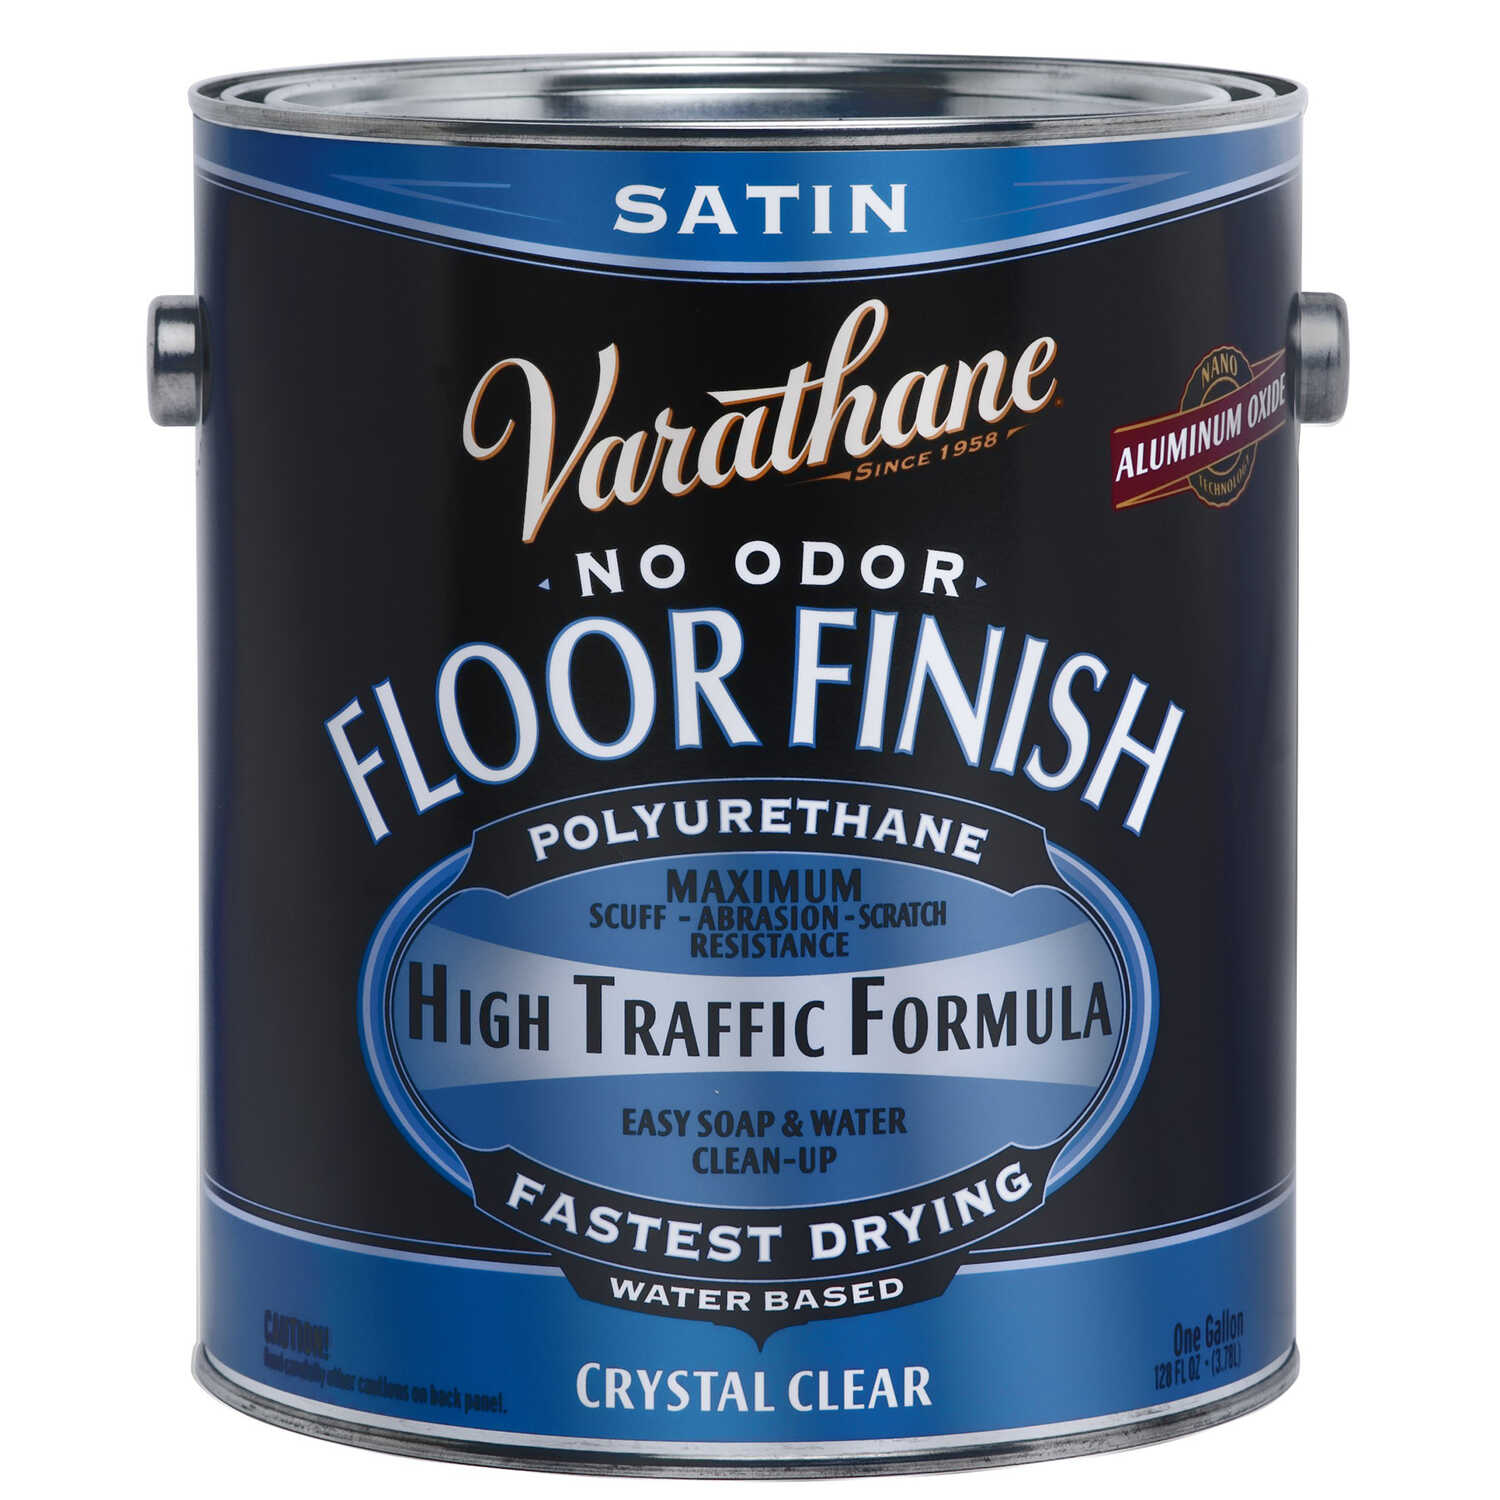 Varathane  Crystal Clear  Floor Finish  1 gal.